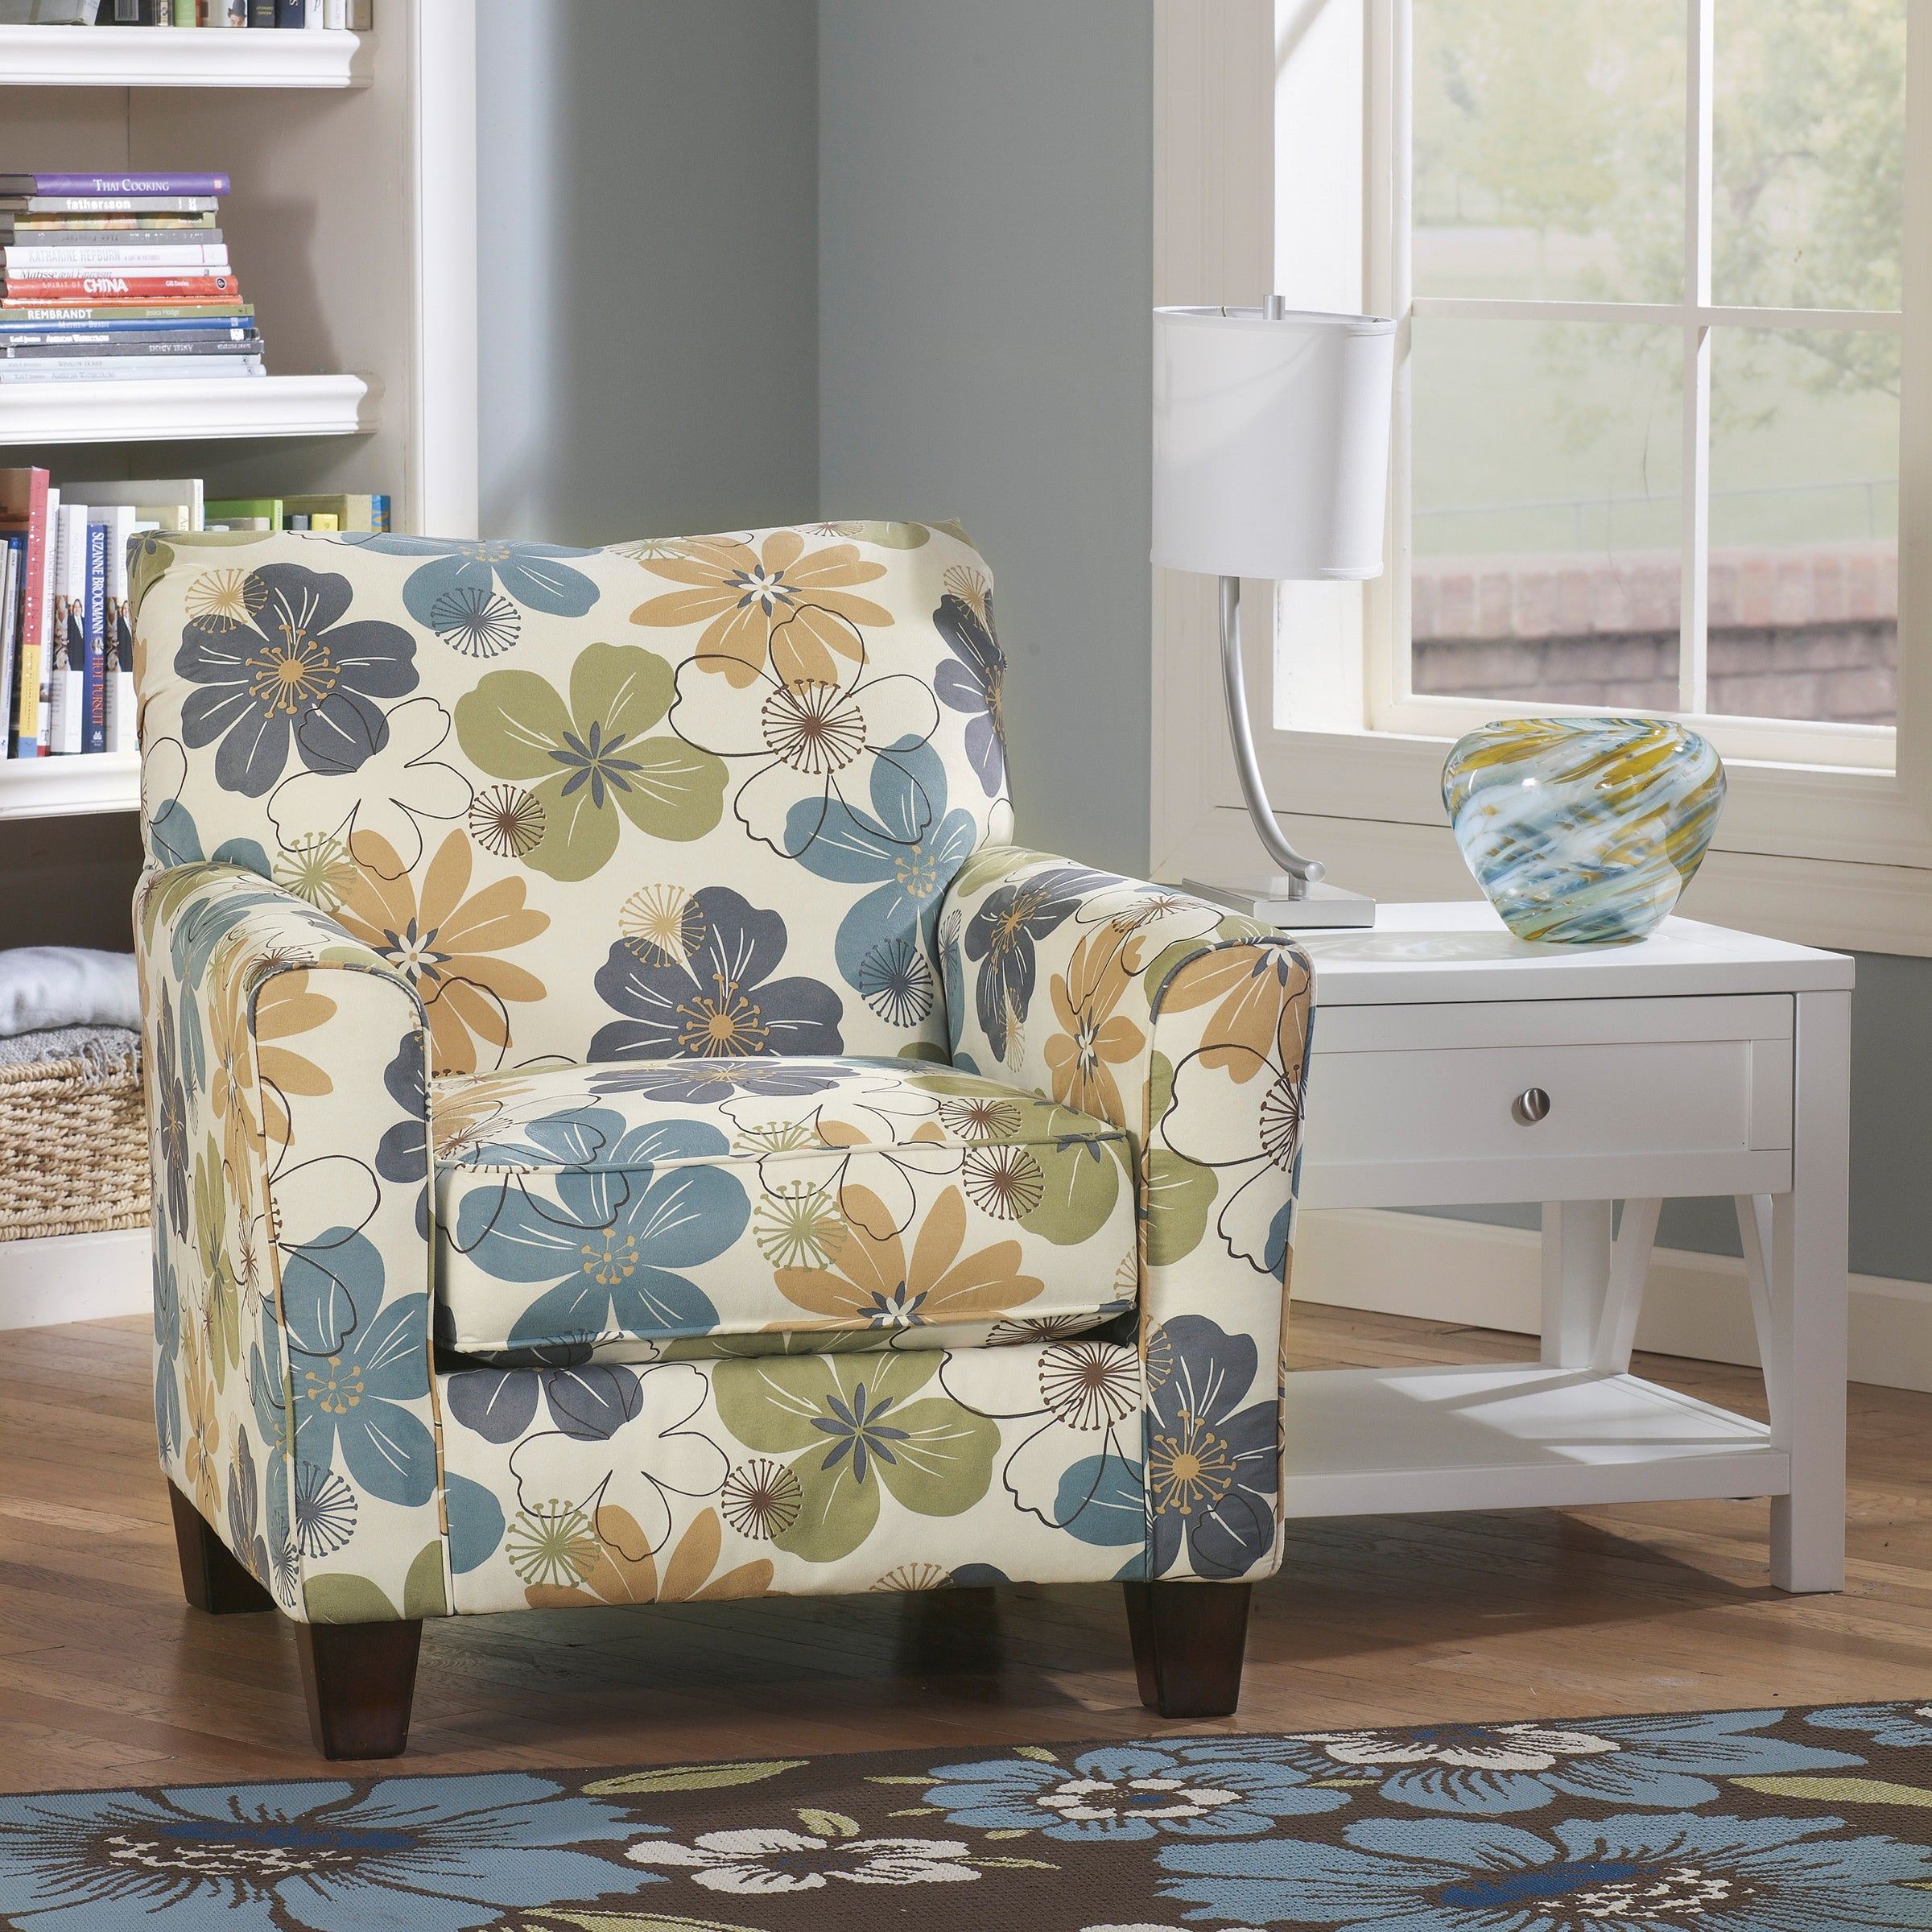 Picture of: Signature Design By Ashley Kylee Spa Blue Floral Print Accent Chair Overstock 8896120